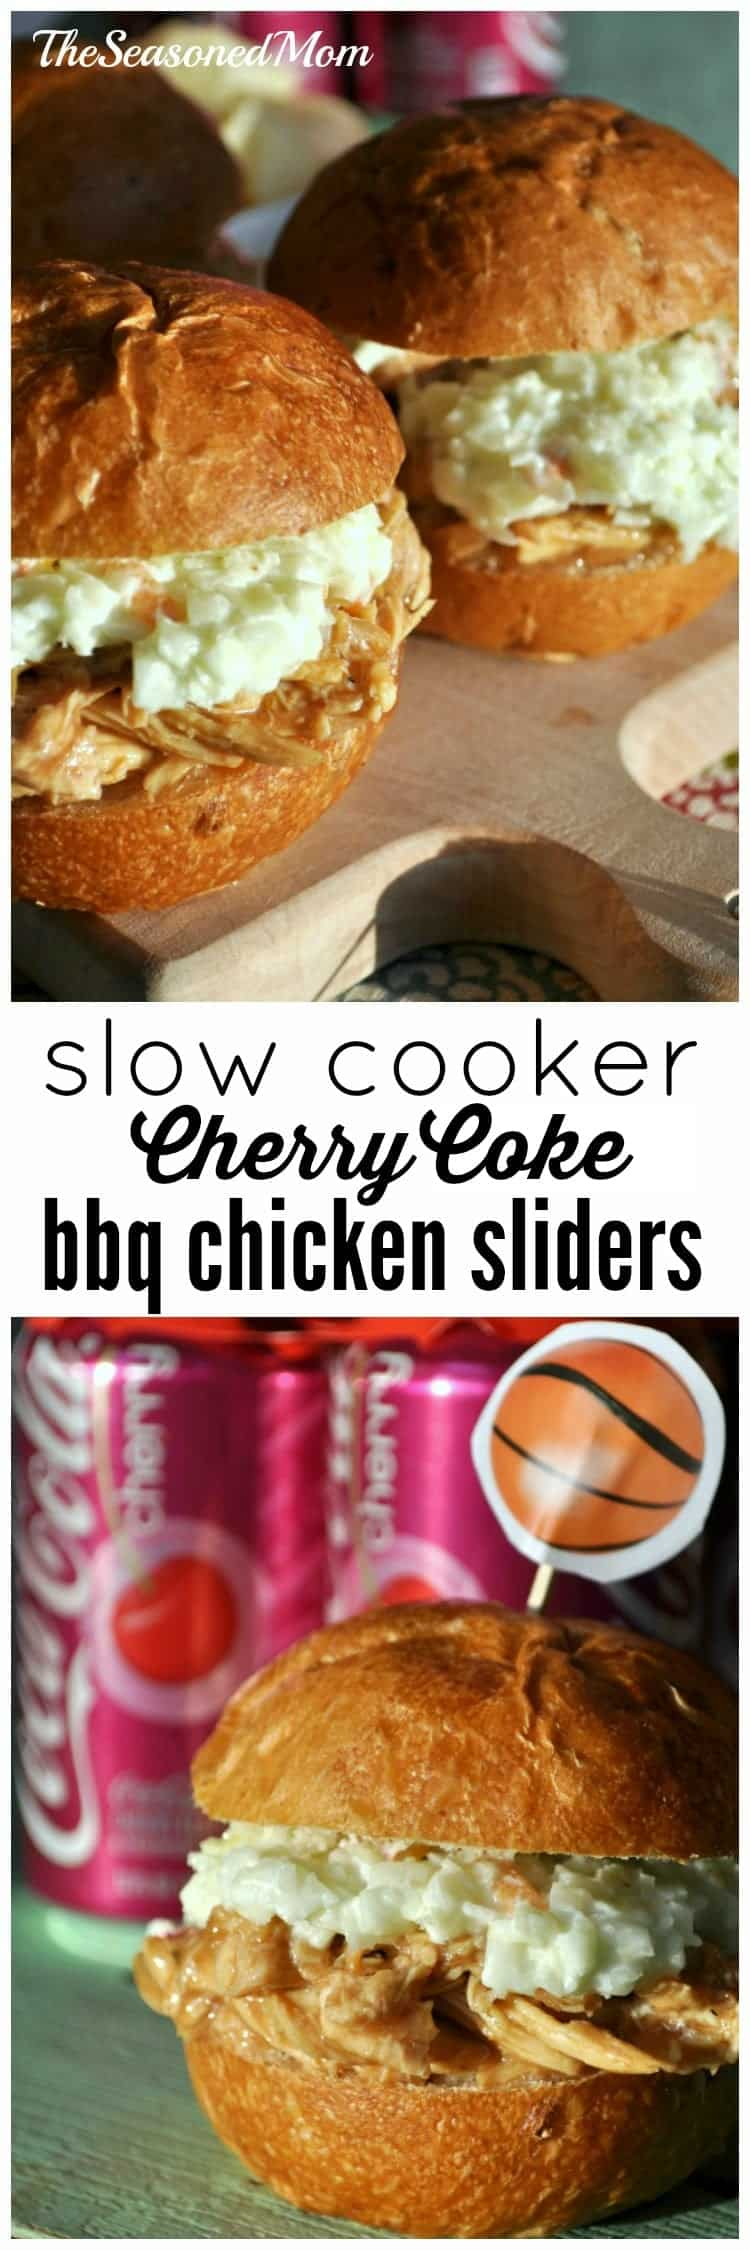 Slow Cooker Cherry Coke Barbecue Chicken Sliders - The Seasoned Mom